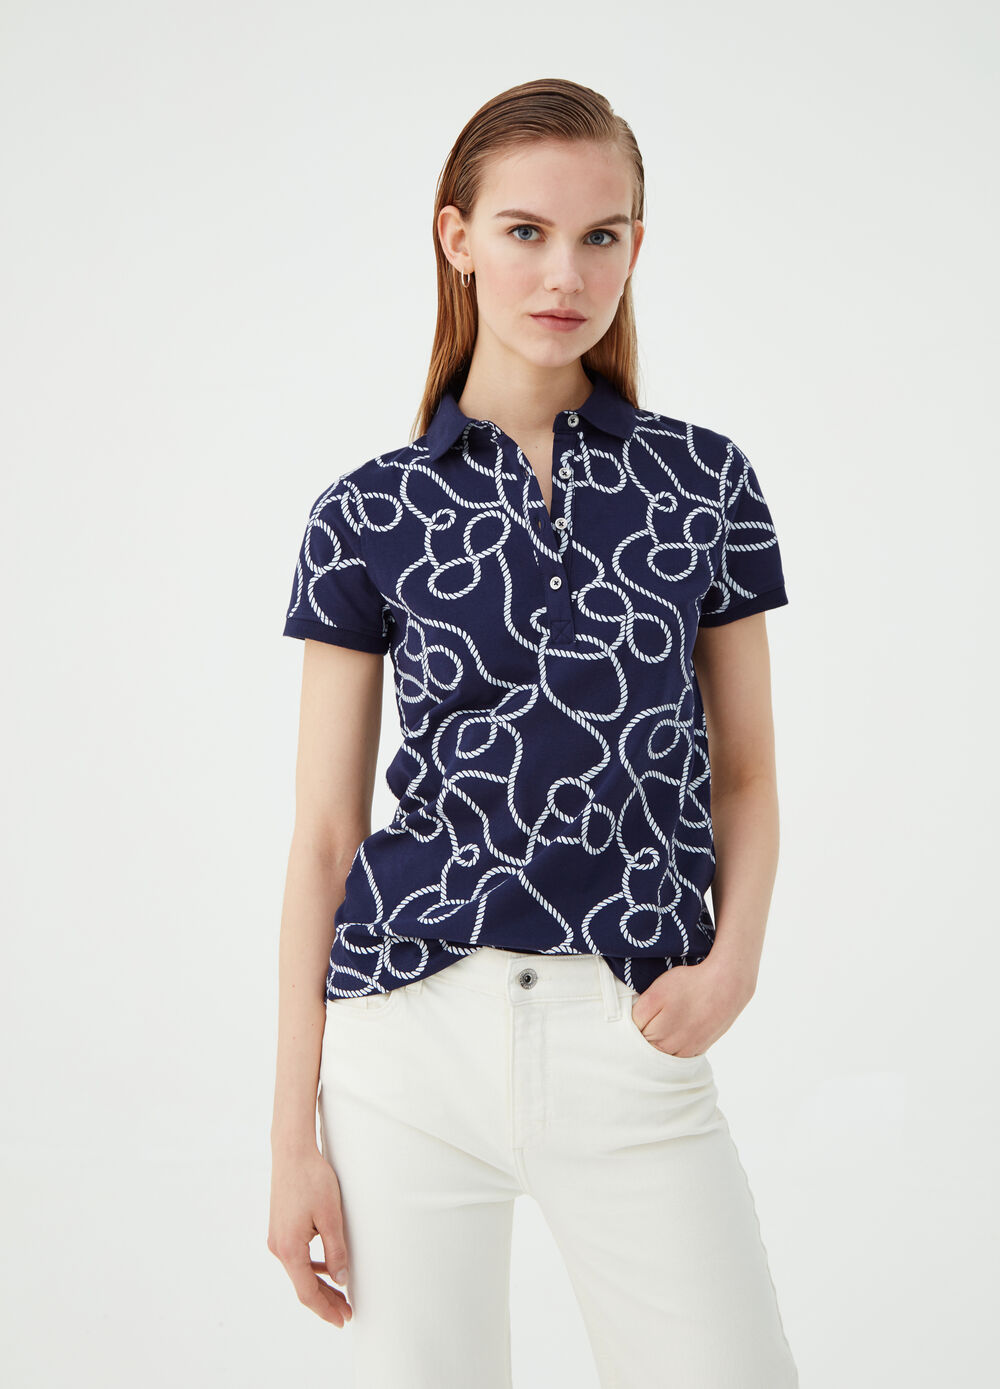 Organic cotton polo shirt with contrasting pattern